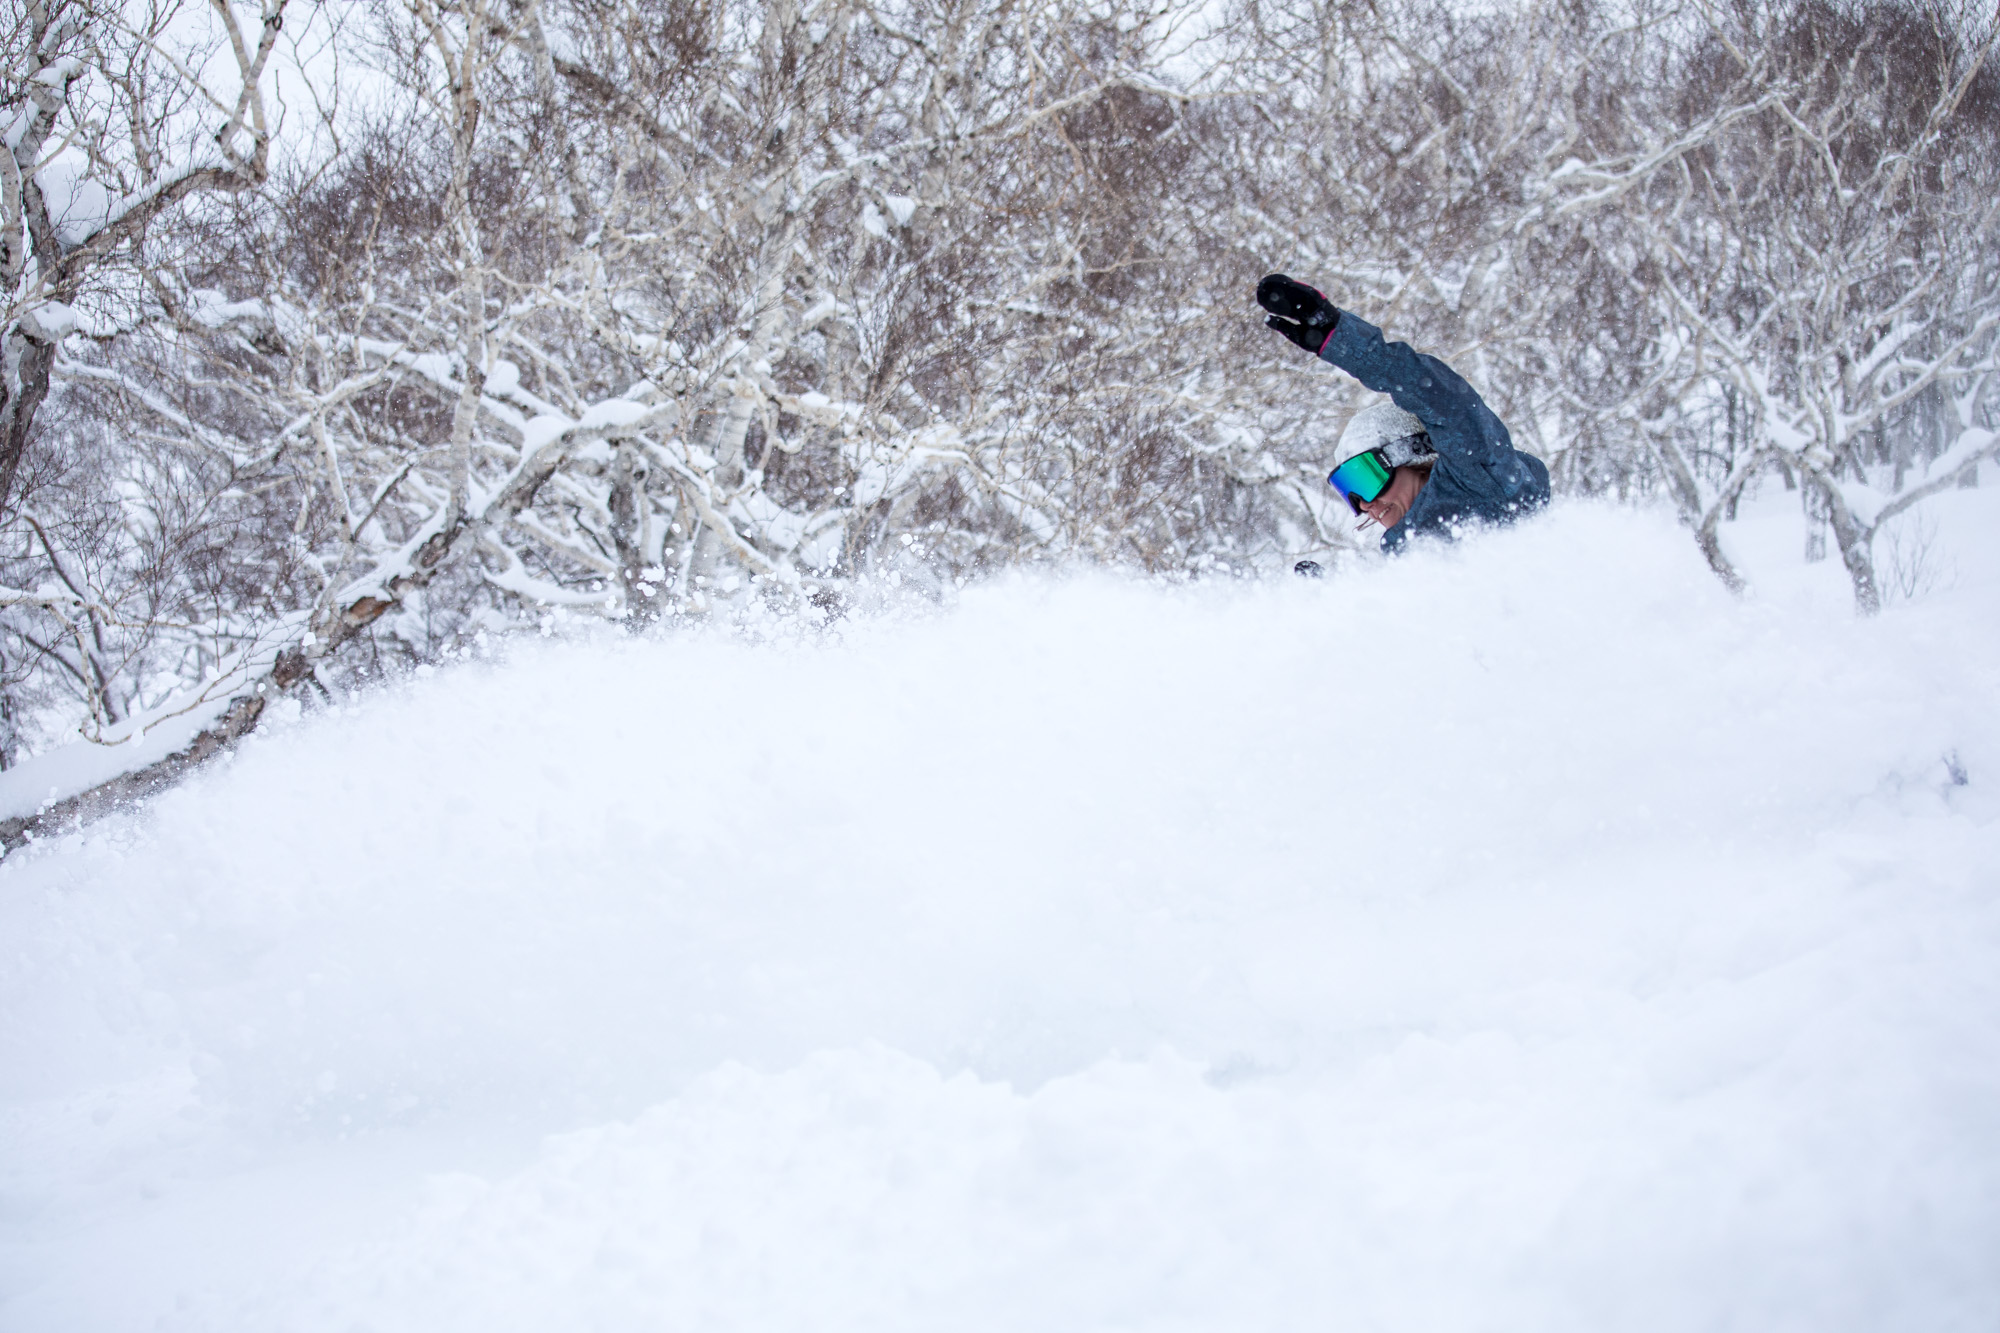 Japan-Niseko-Hirafu-day2-ChristineSavage-Jan18-walsh-31.jpg